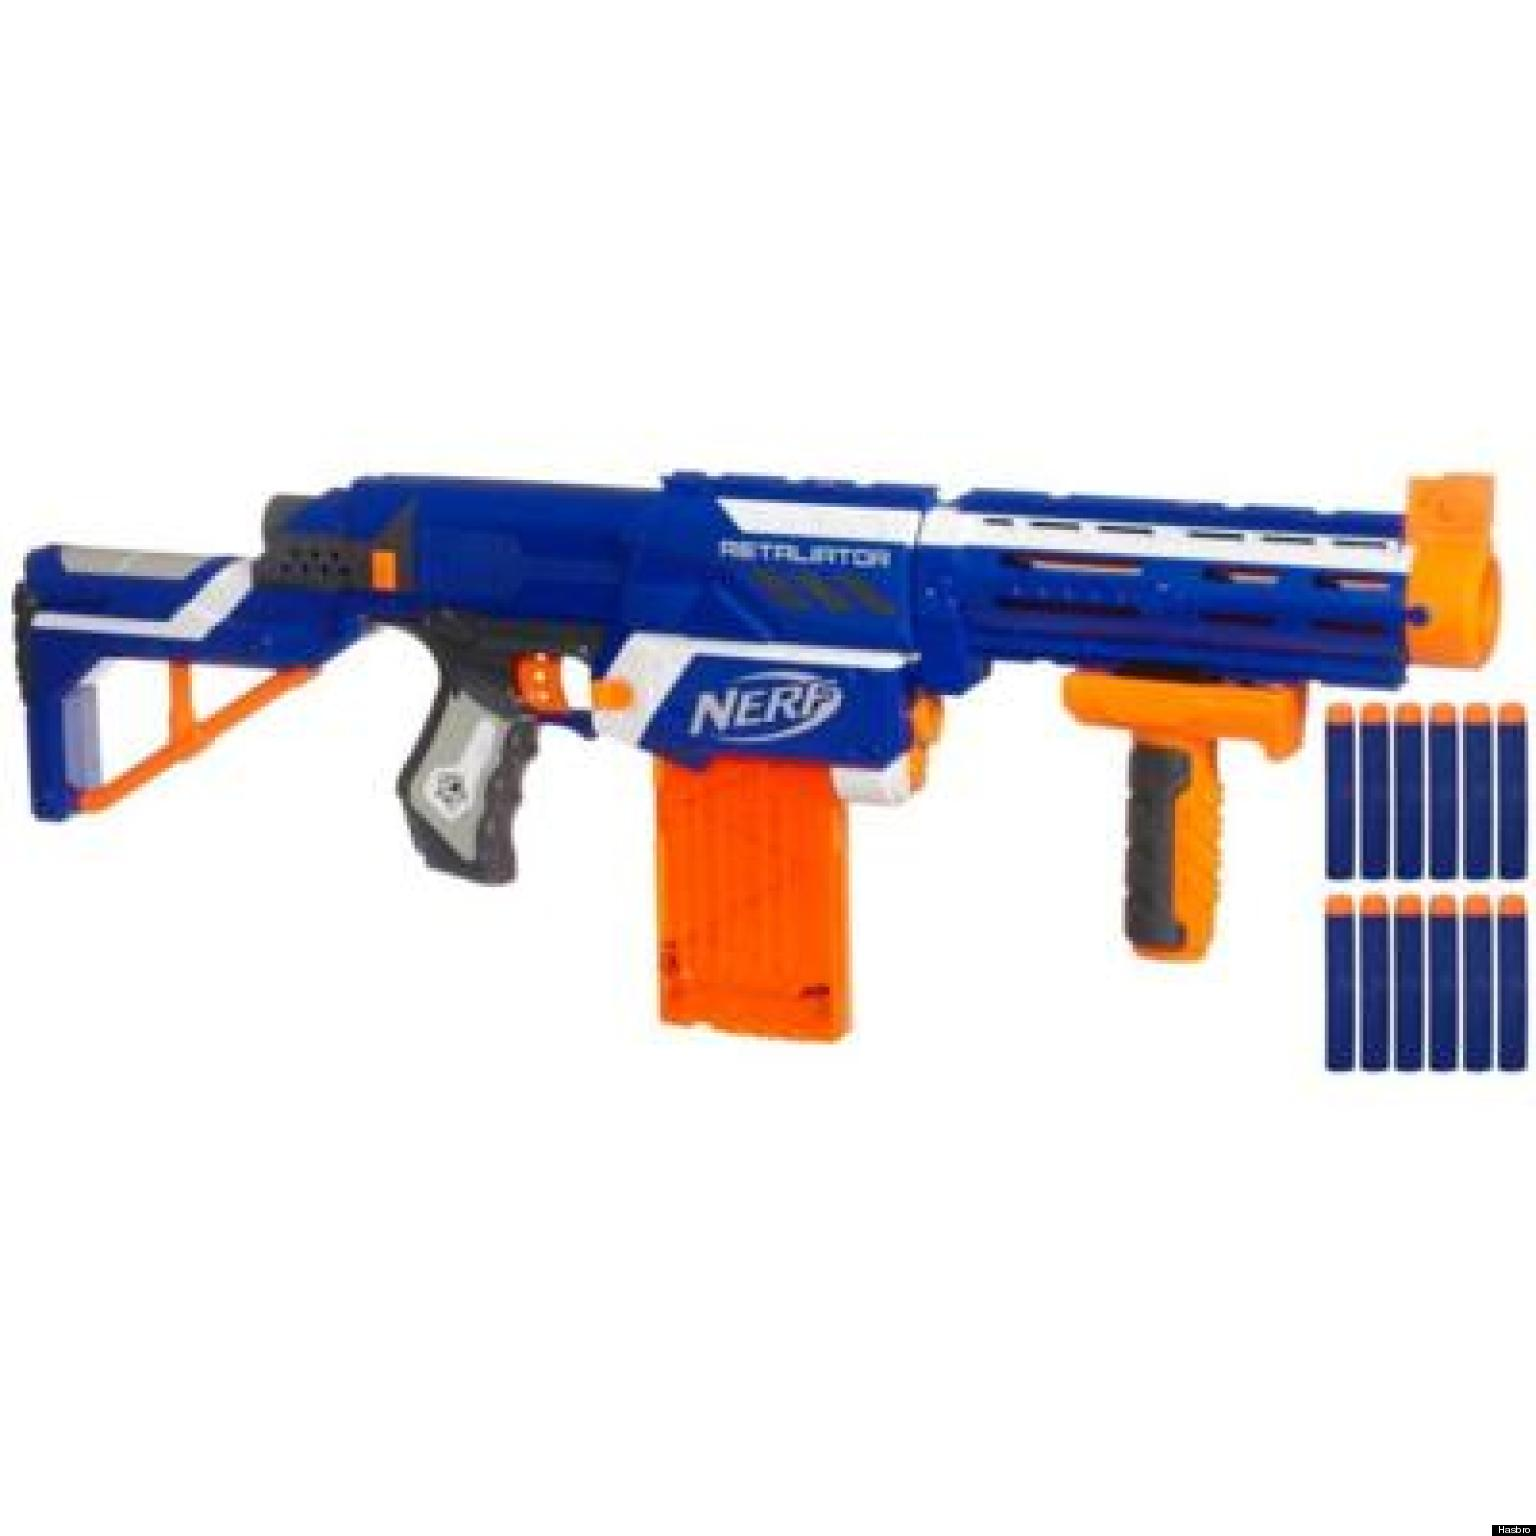 Toy Guns Shunned By Parents As Holiday Gifts After Newtown